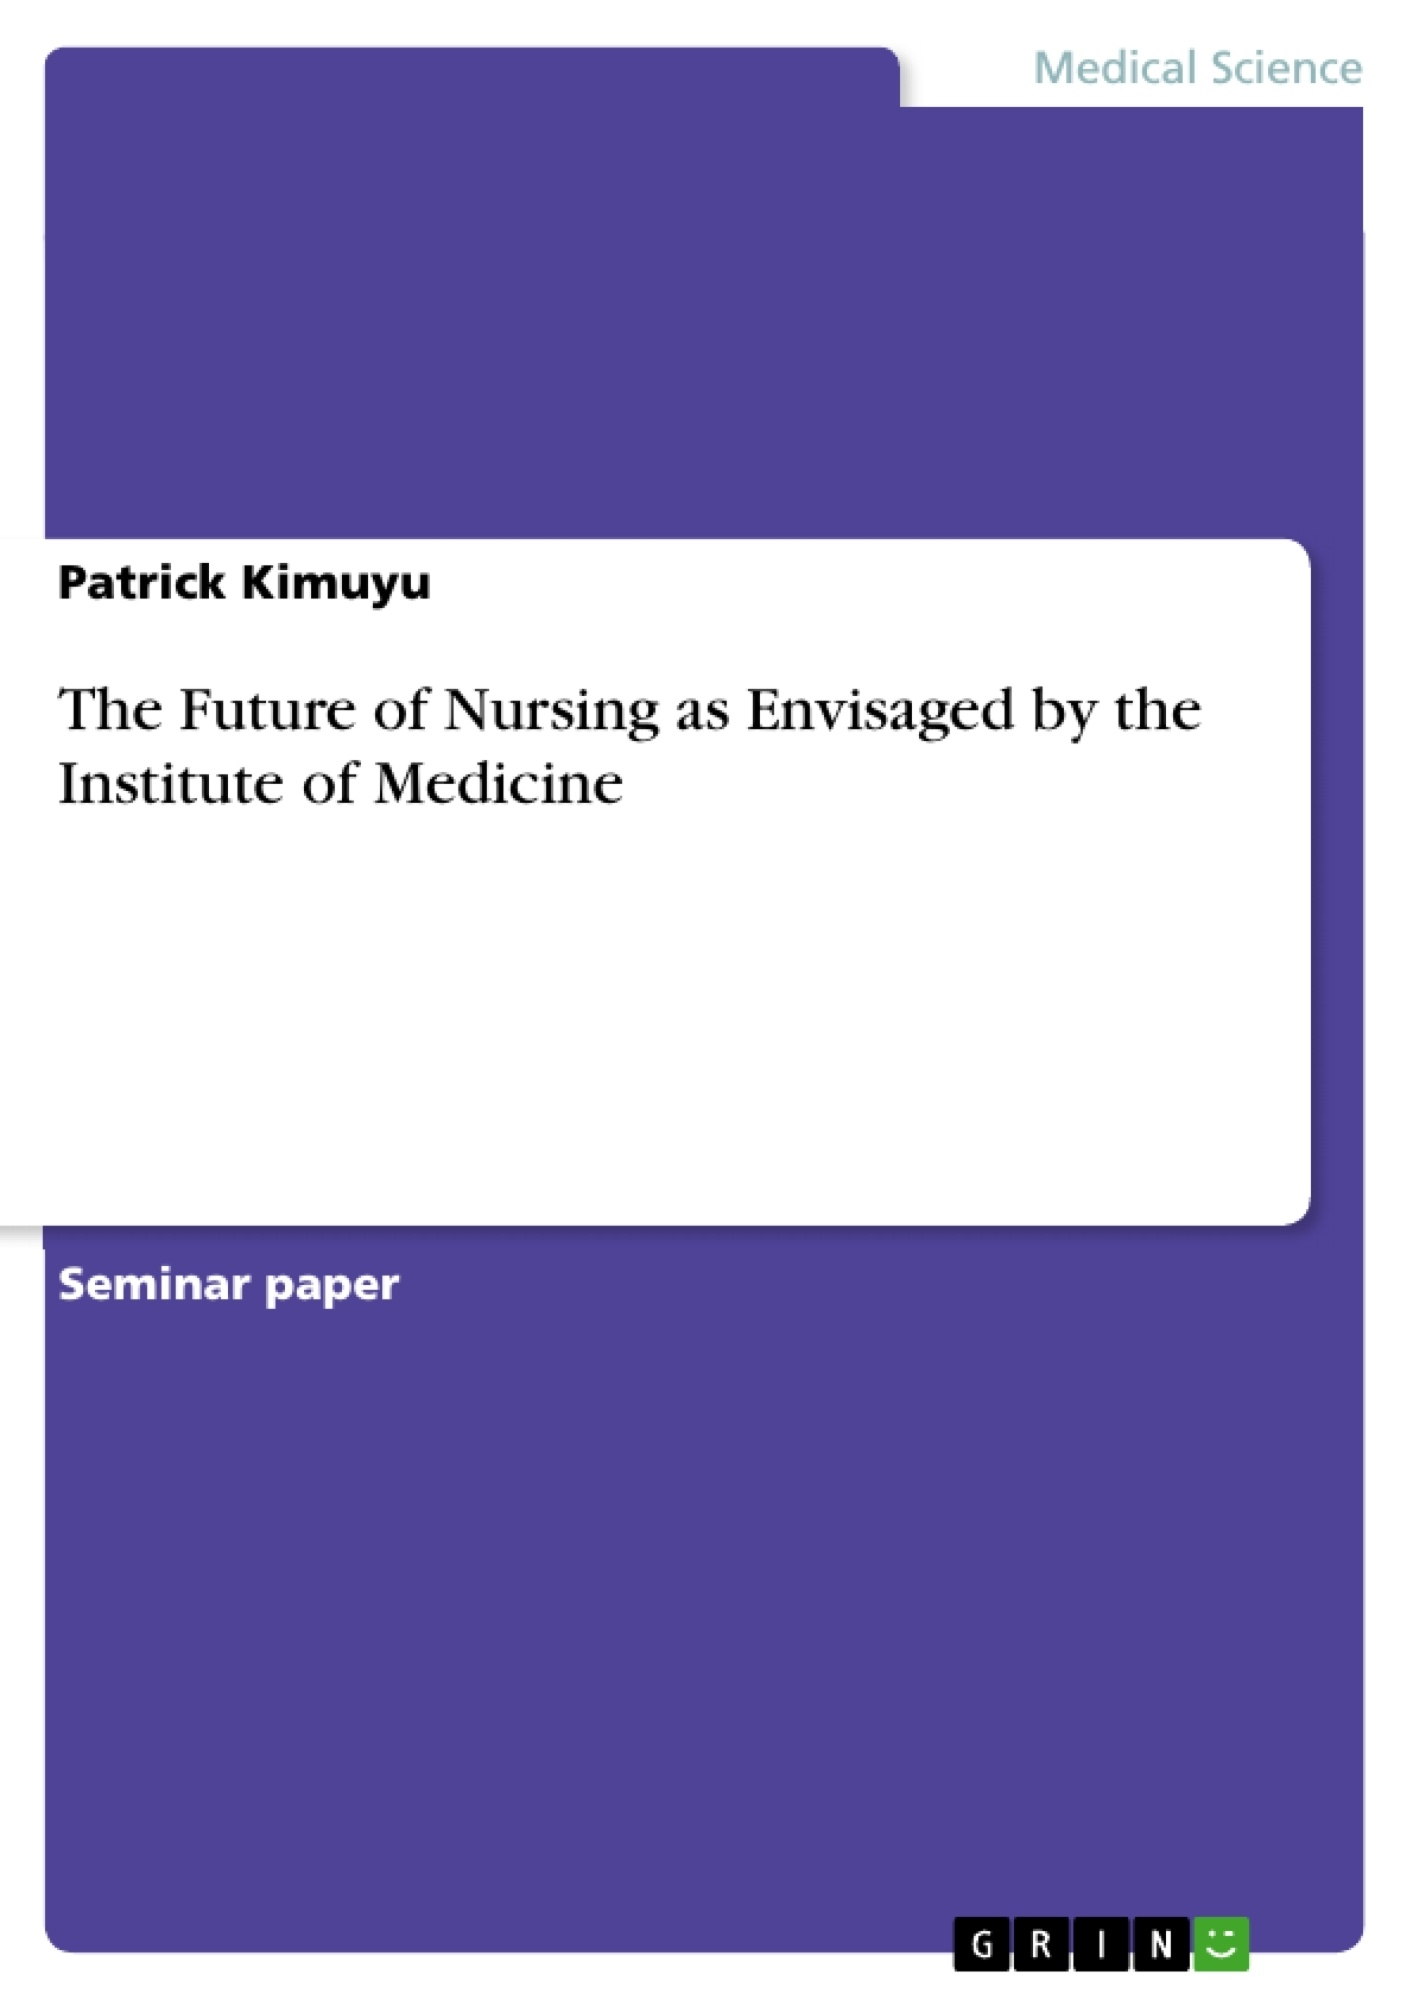 Title: The Future of Nursing as Envisaged by the Institute of Medicine